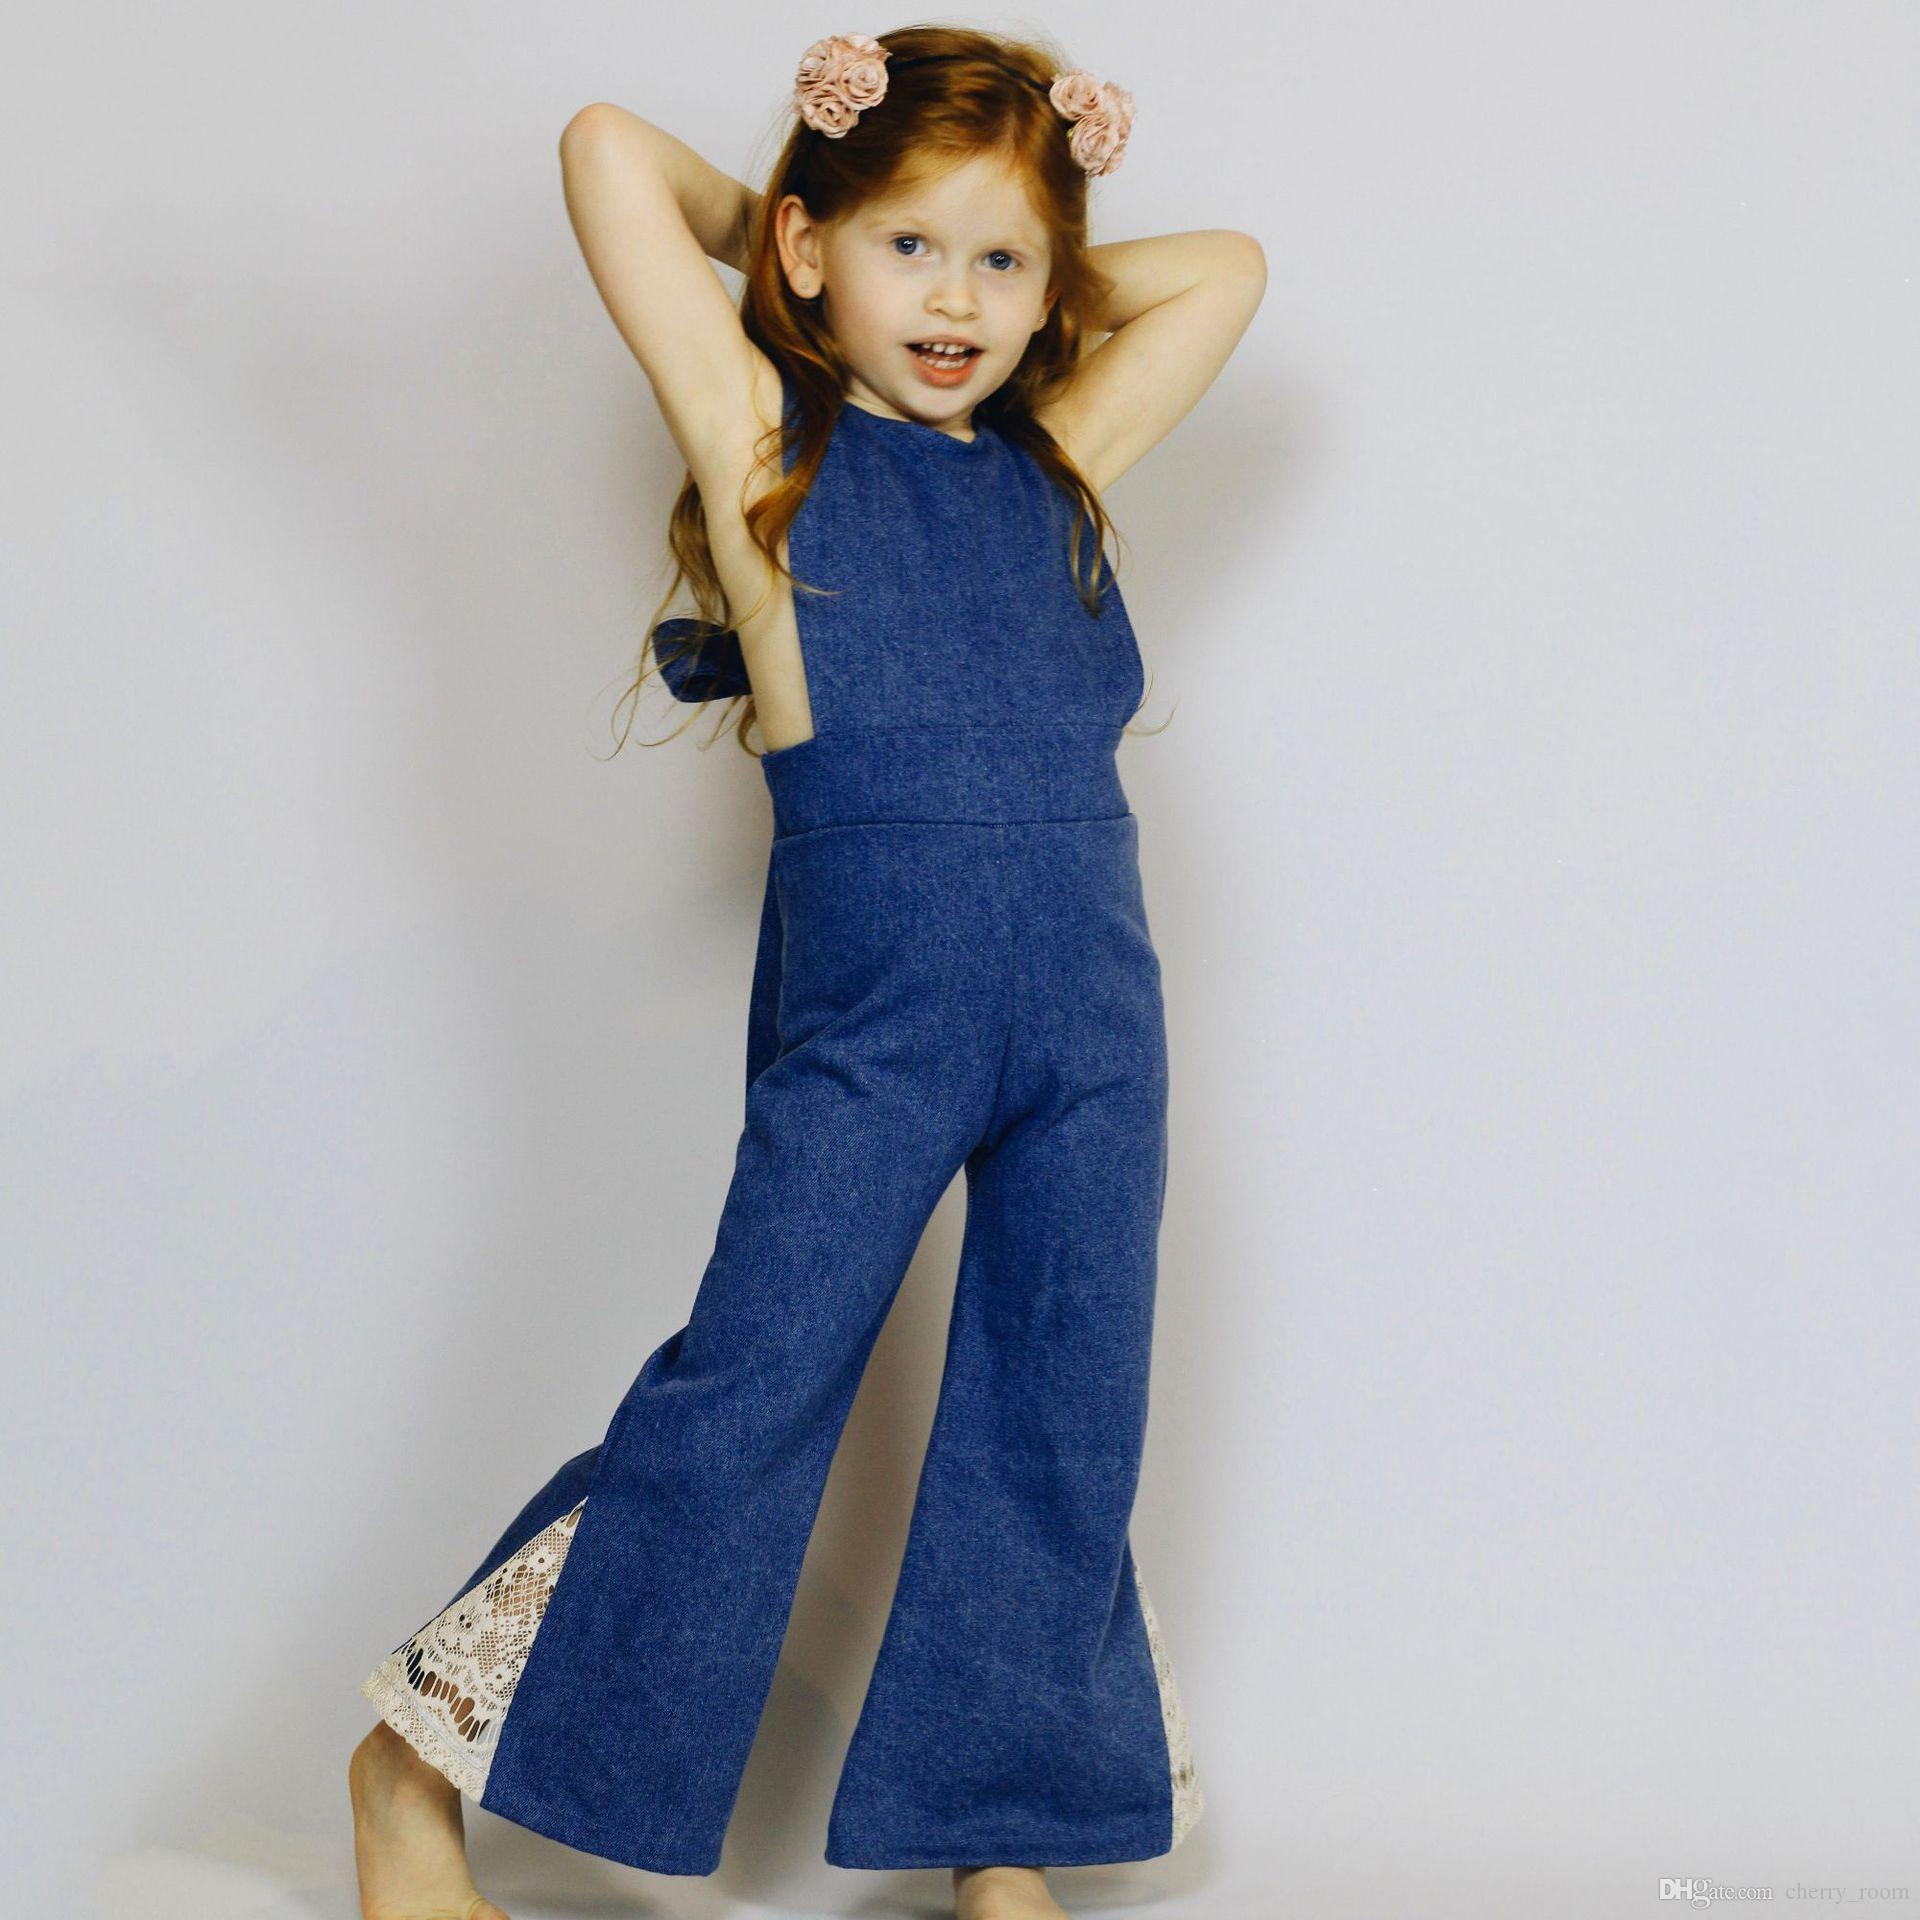 9358e44cd62 2018 Fashion Kids Girls Jumpsuits Baby Girl Overalls Jeans Cotton Bodysuits  Childrens Denim Backless Halter Rompers Boot Lace Pants A9603 Boys Dress  Pants ...